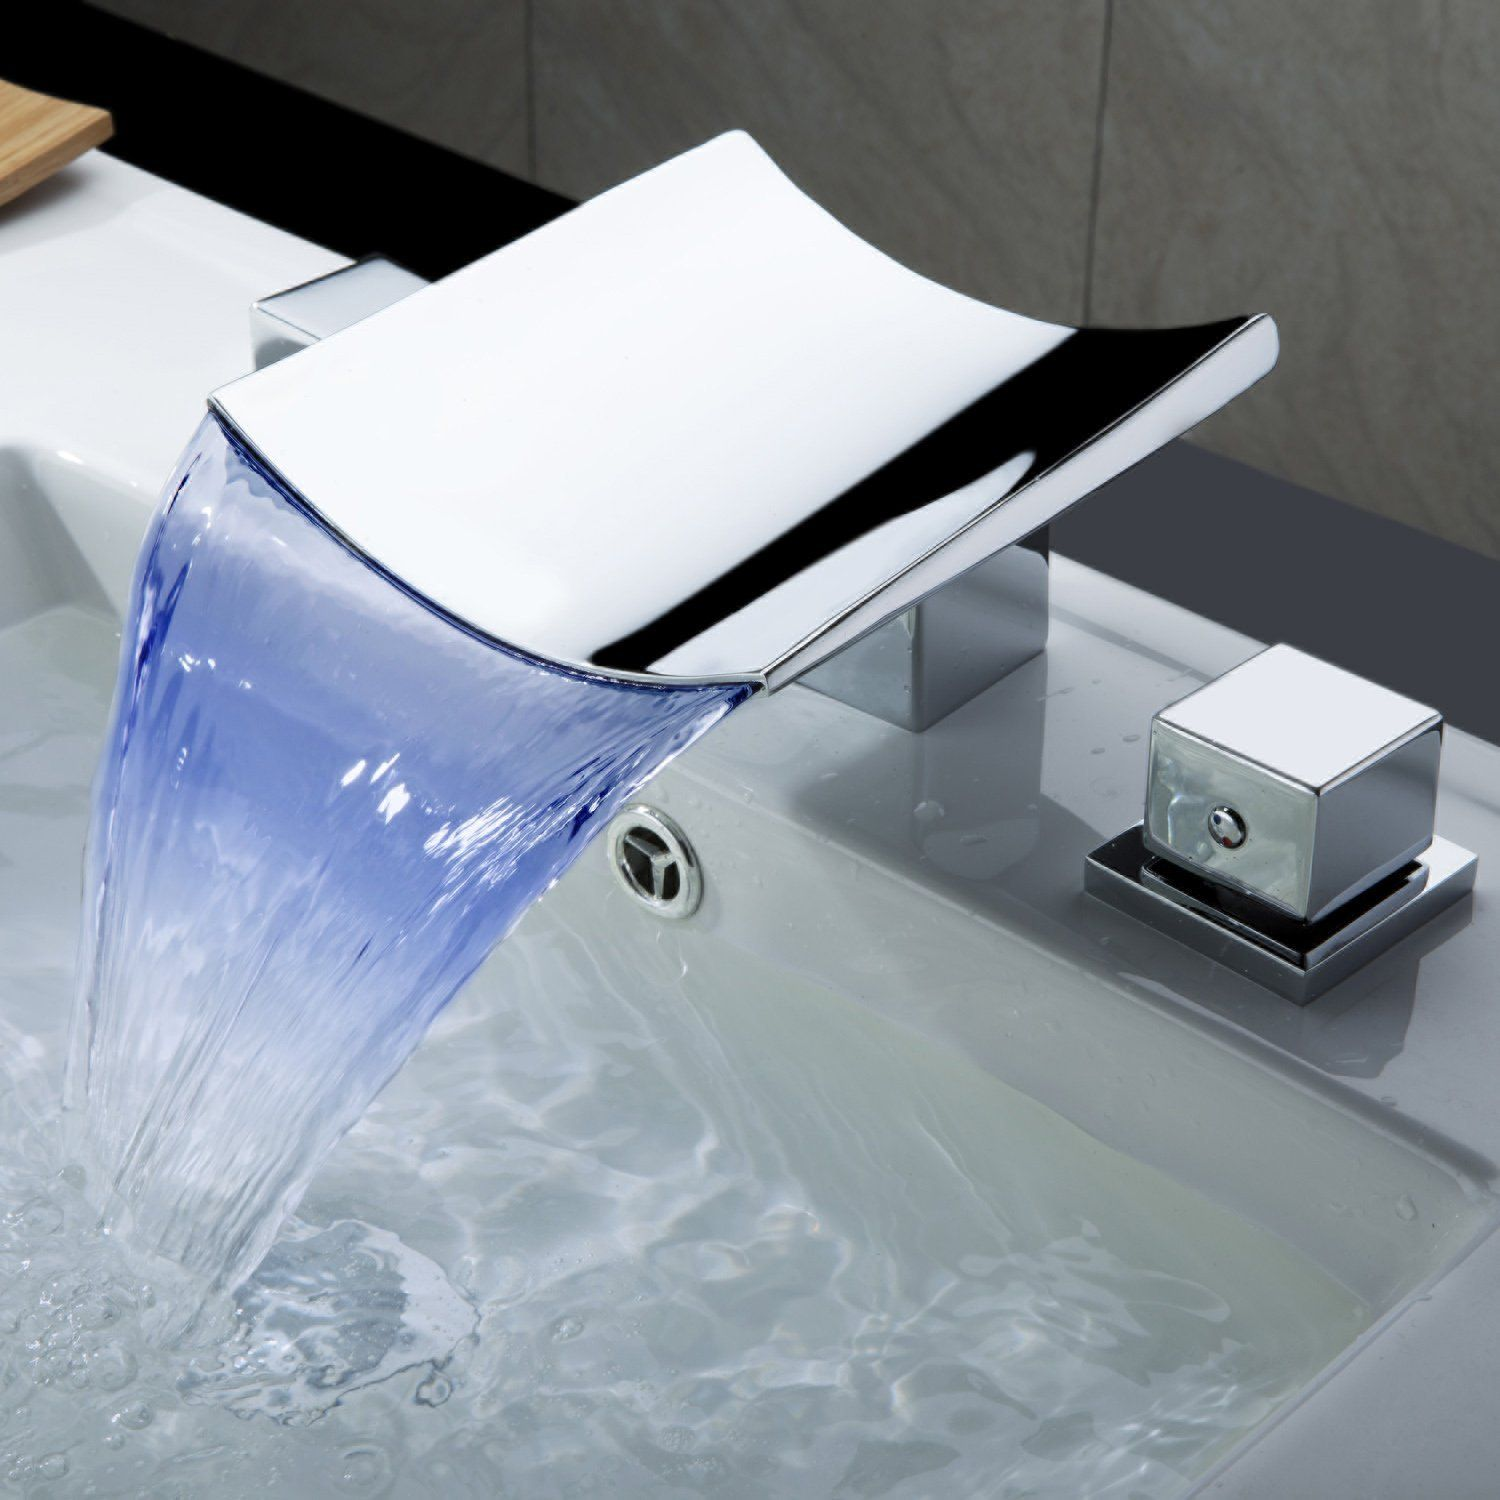 Superb Waterfall Design For Modern Bathroom Faucets With Glossy ...